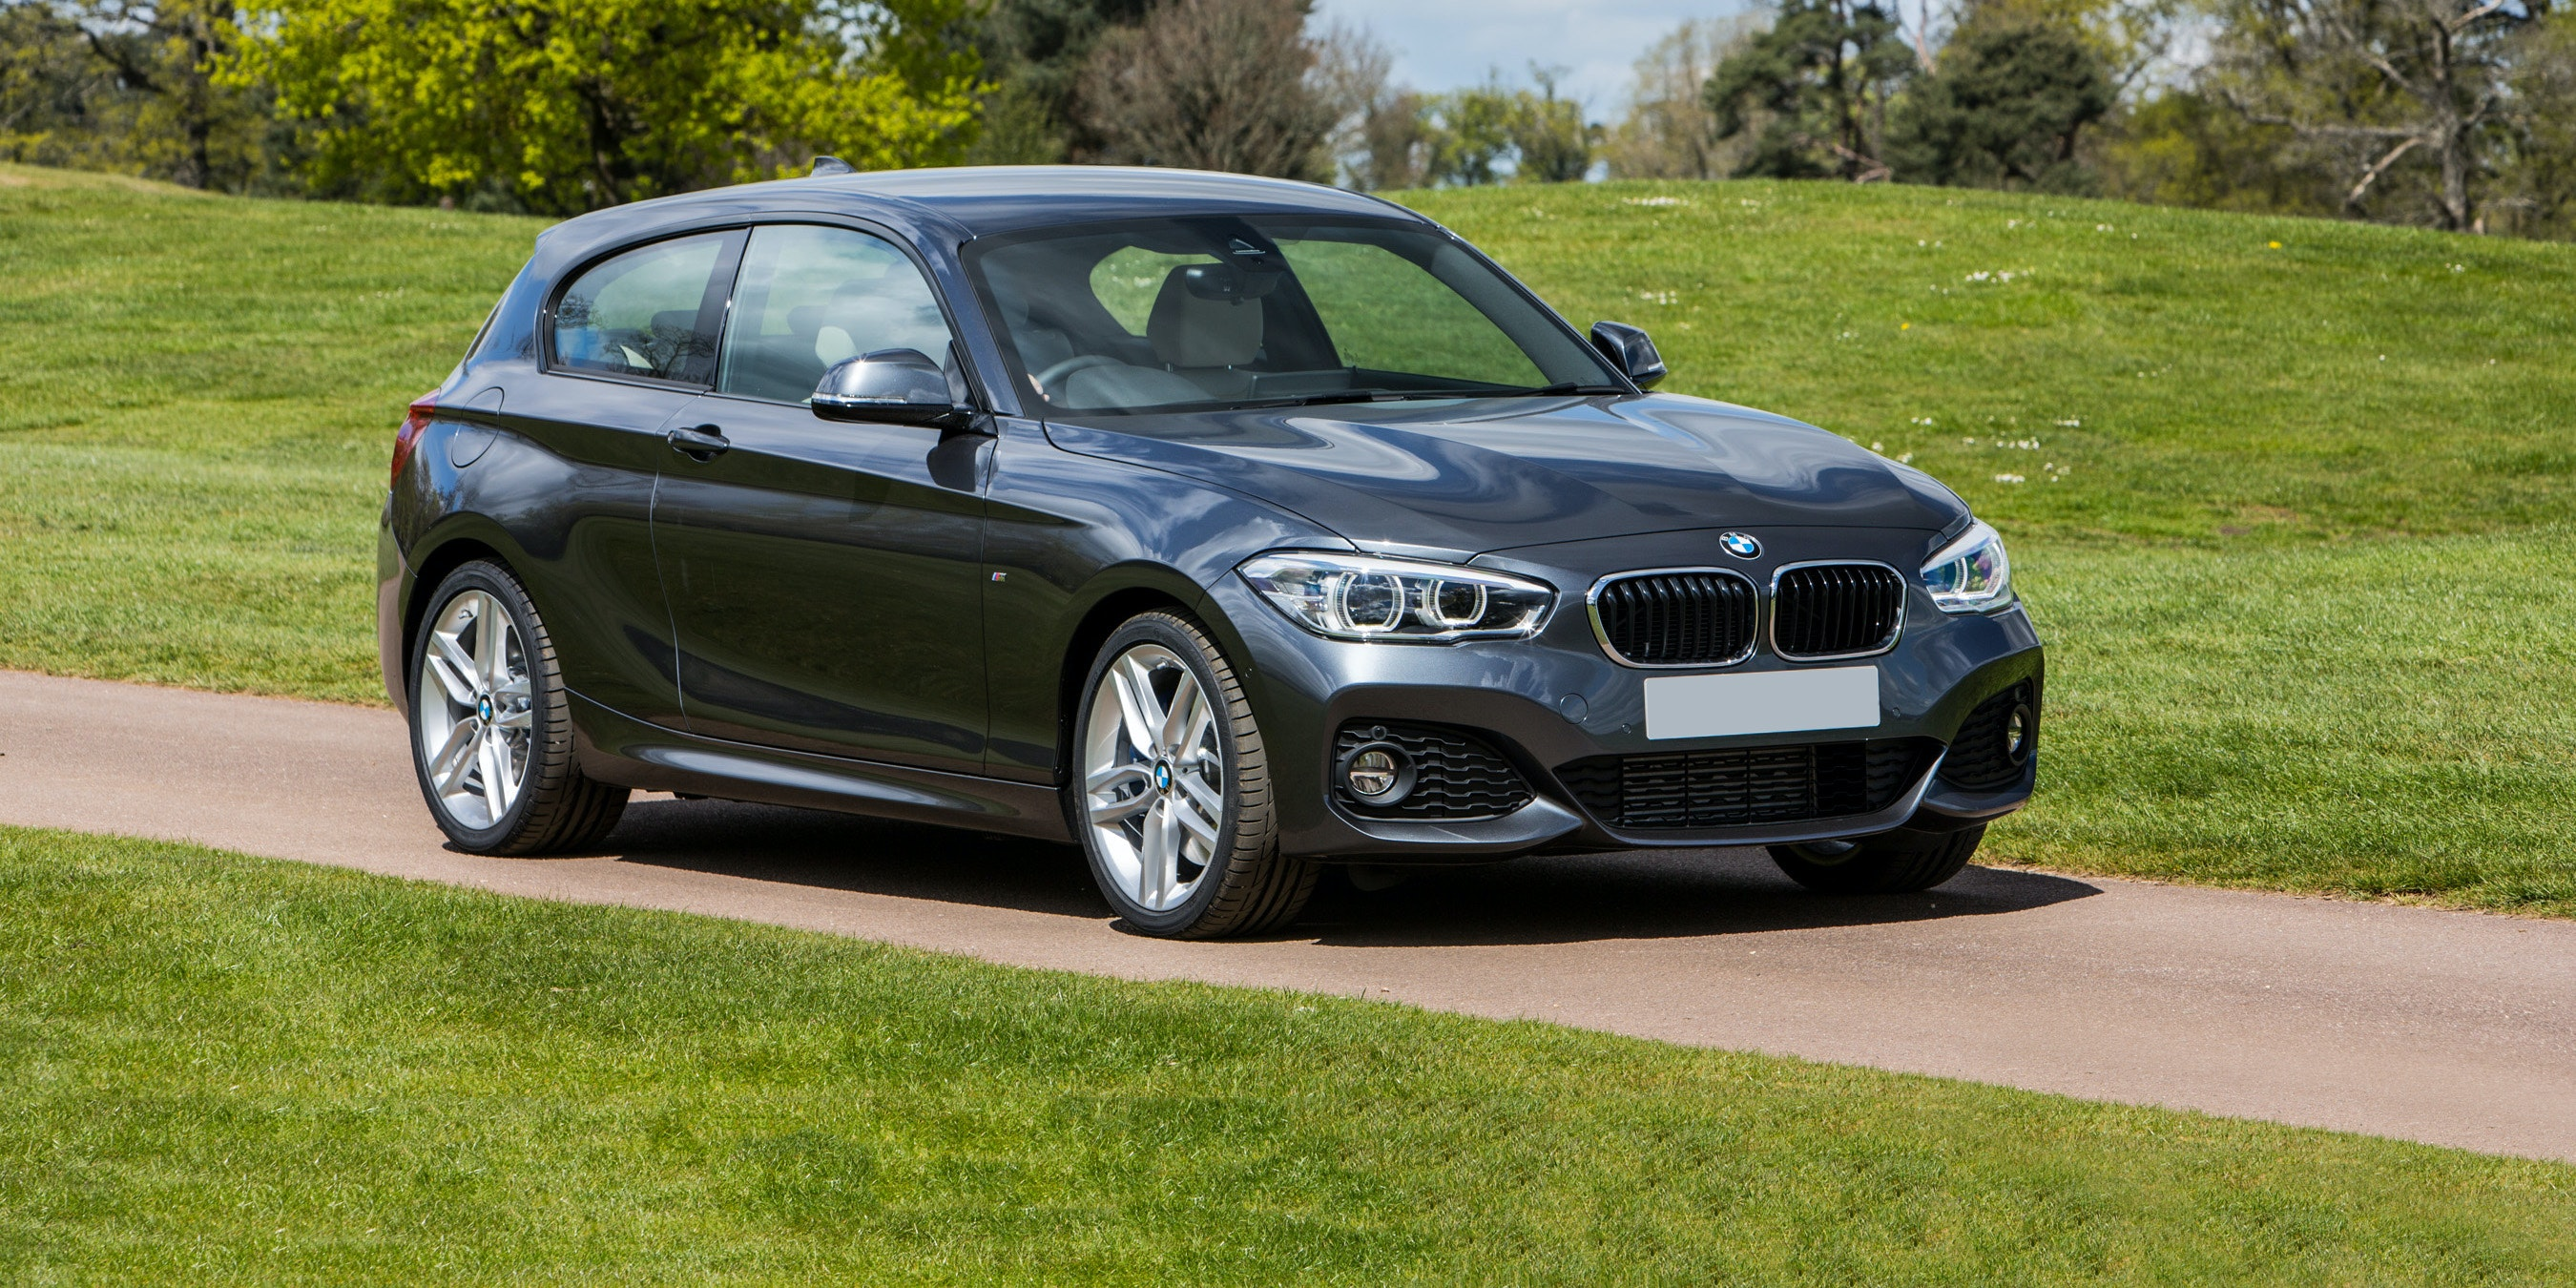 New Bmw 1 Series Review Carwow